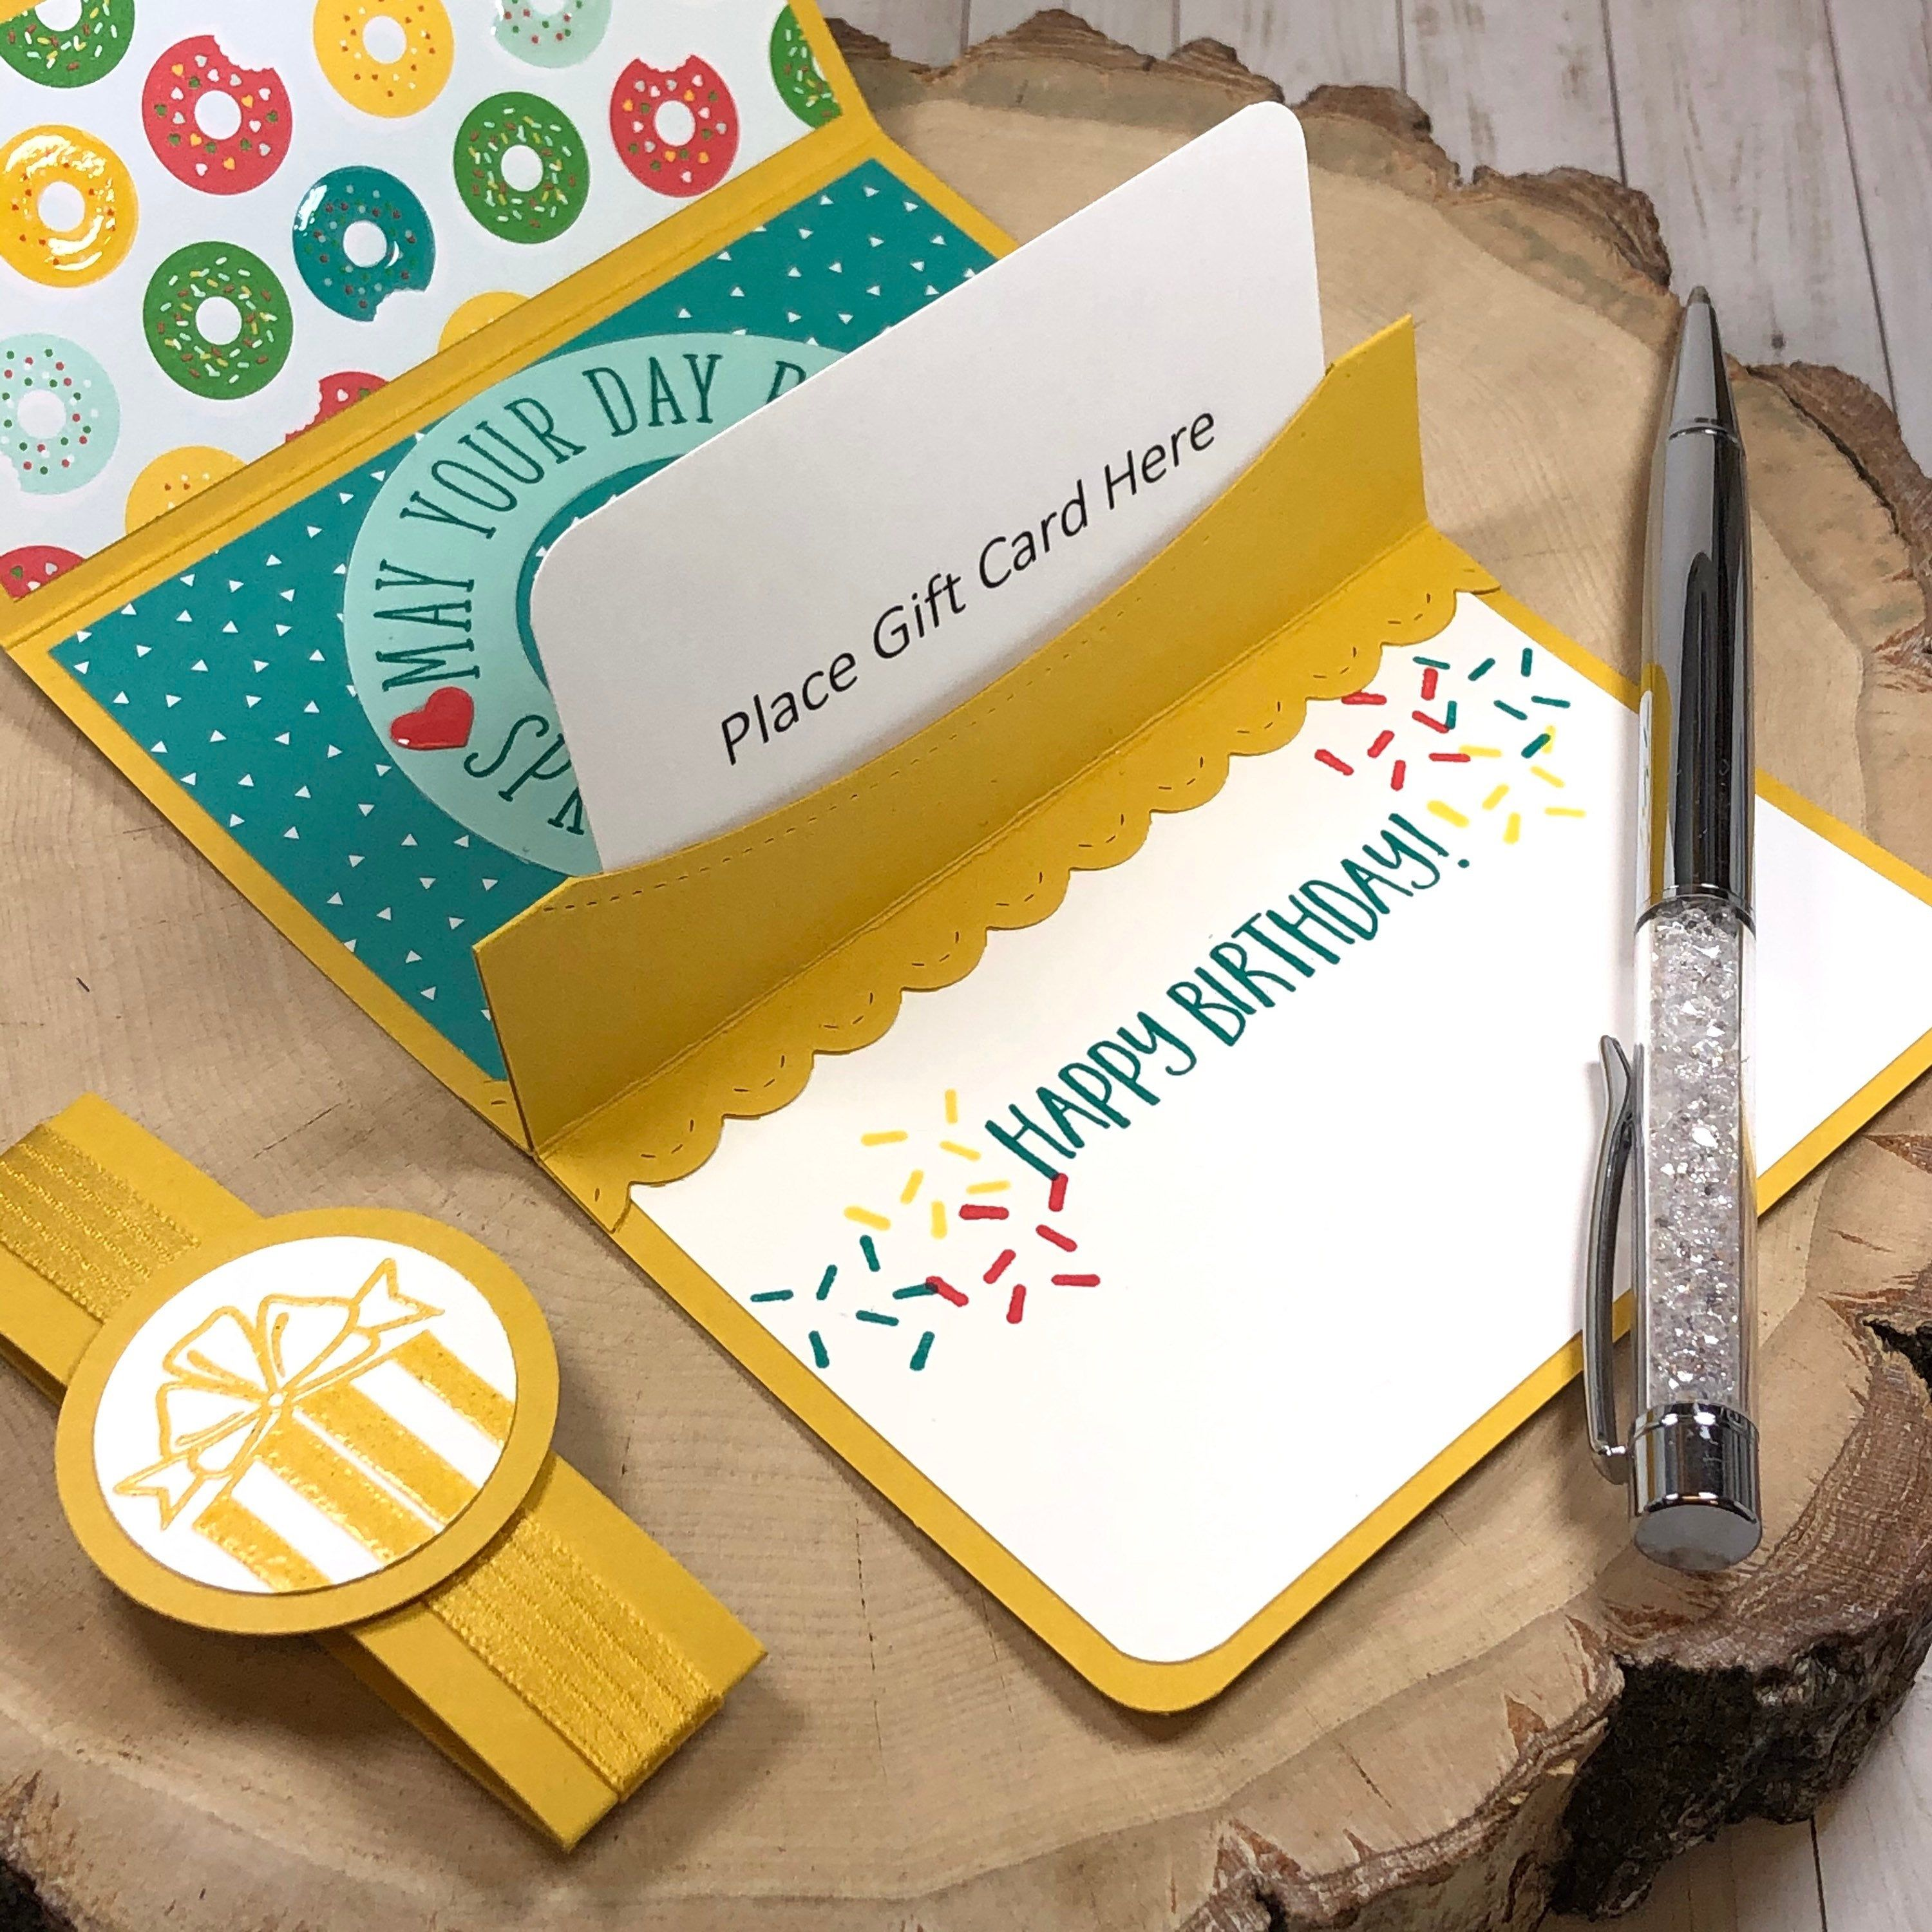 Pop Up Birthday Gift Card Holder With Donuts May Your Day Be Etsy Birthday Gift Cards Birthday Gift Card Holder Gift Card Holder Template